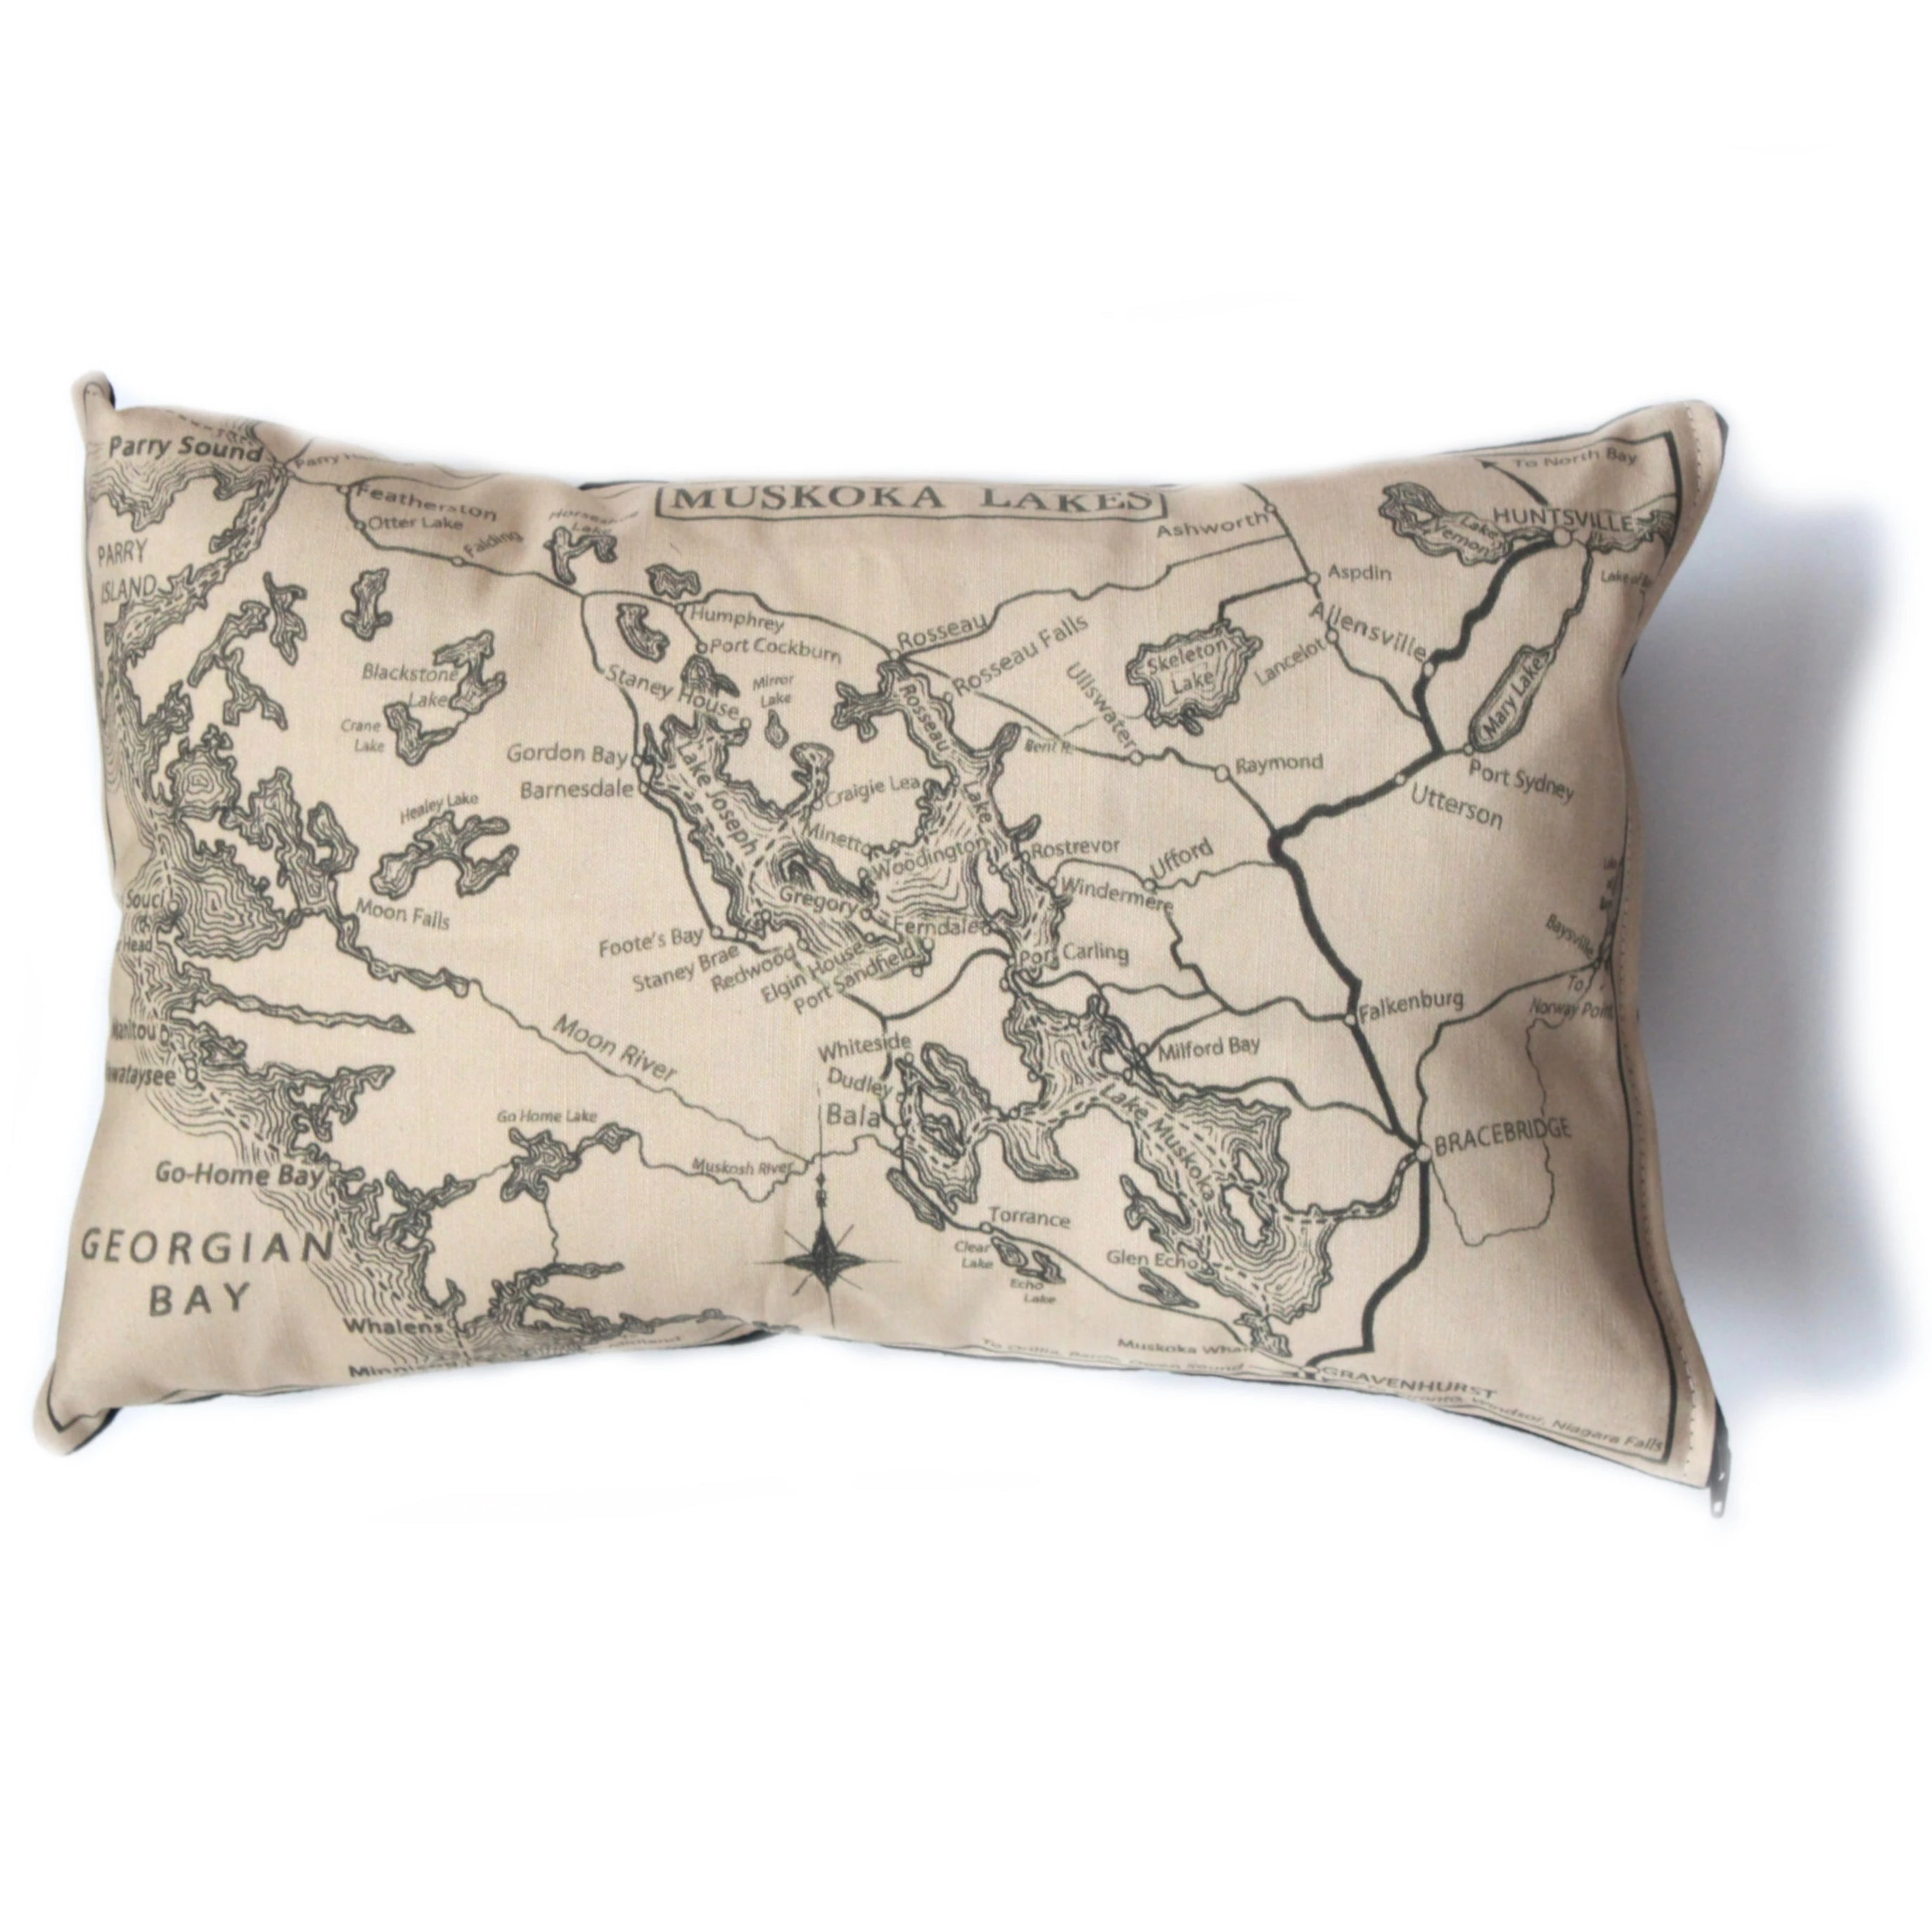 Vintage Muskoka Map Pillow - Vintage Map Co.